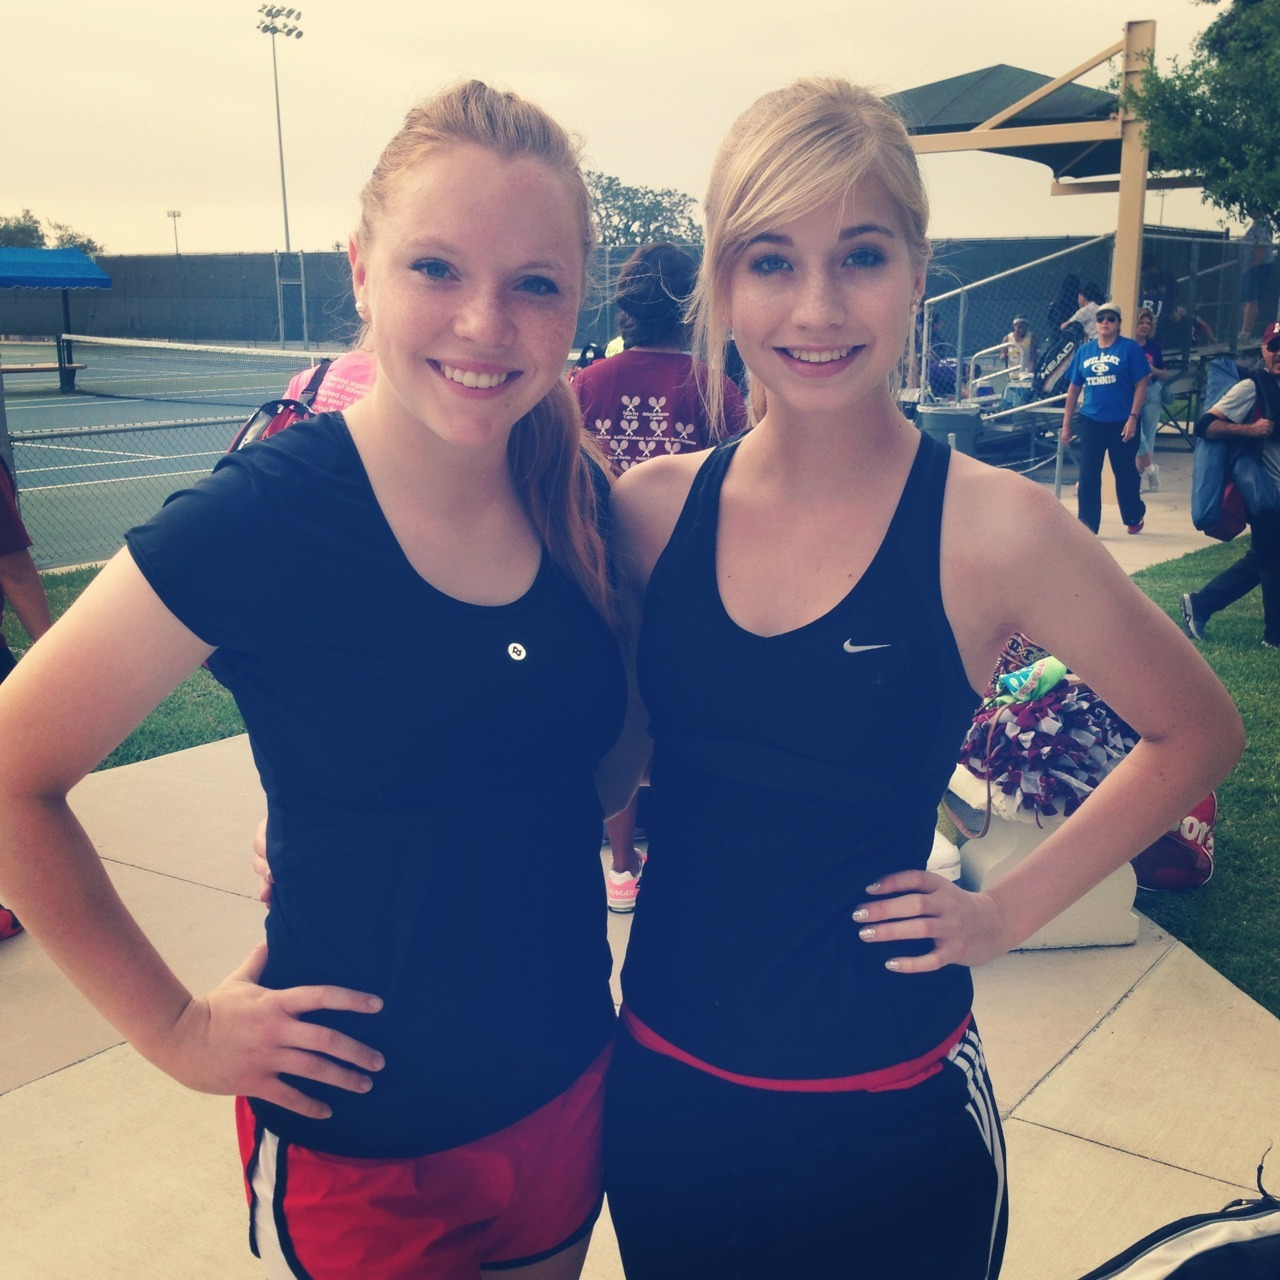 My doubles partner and I at regionals :)